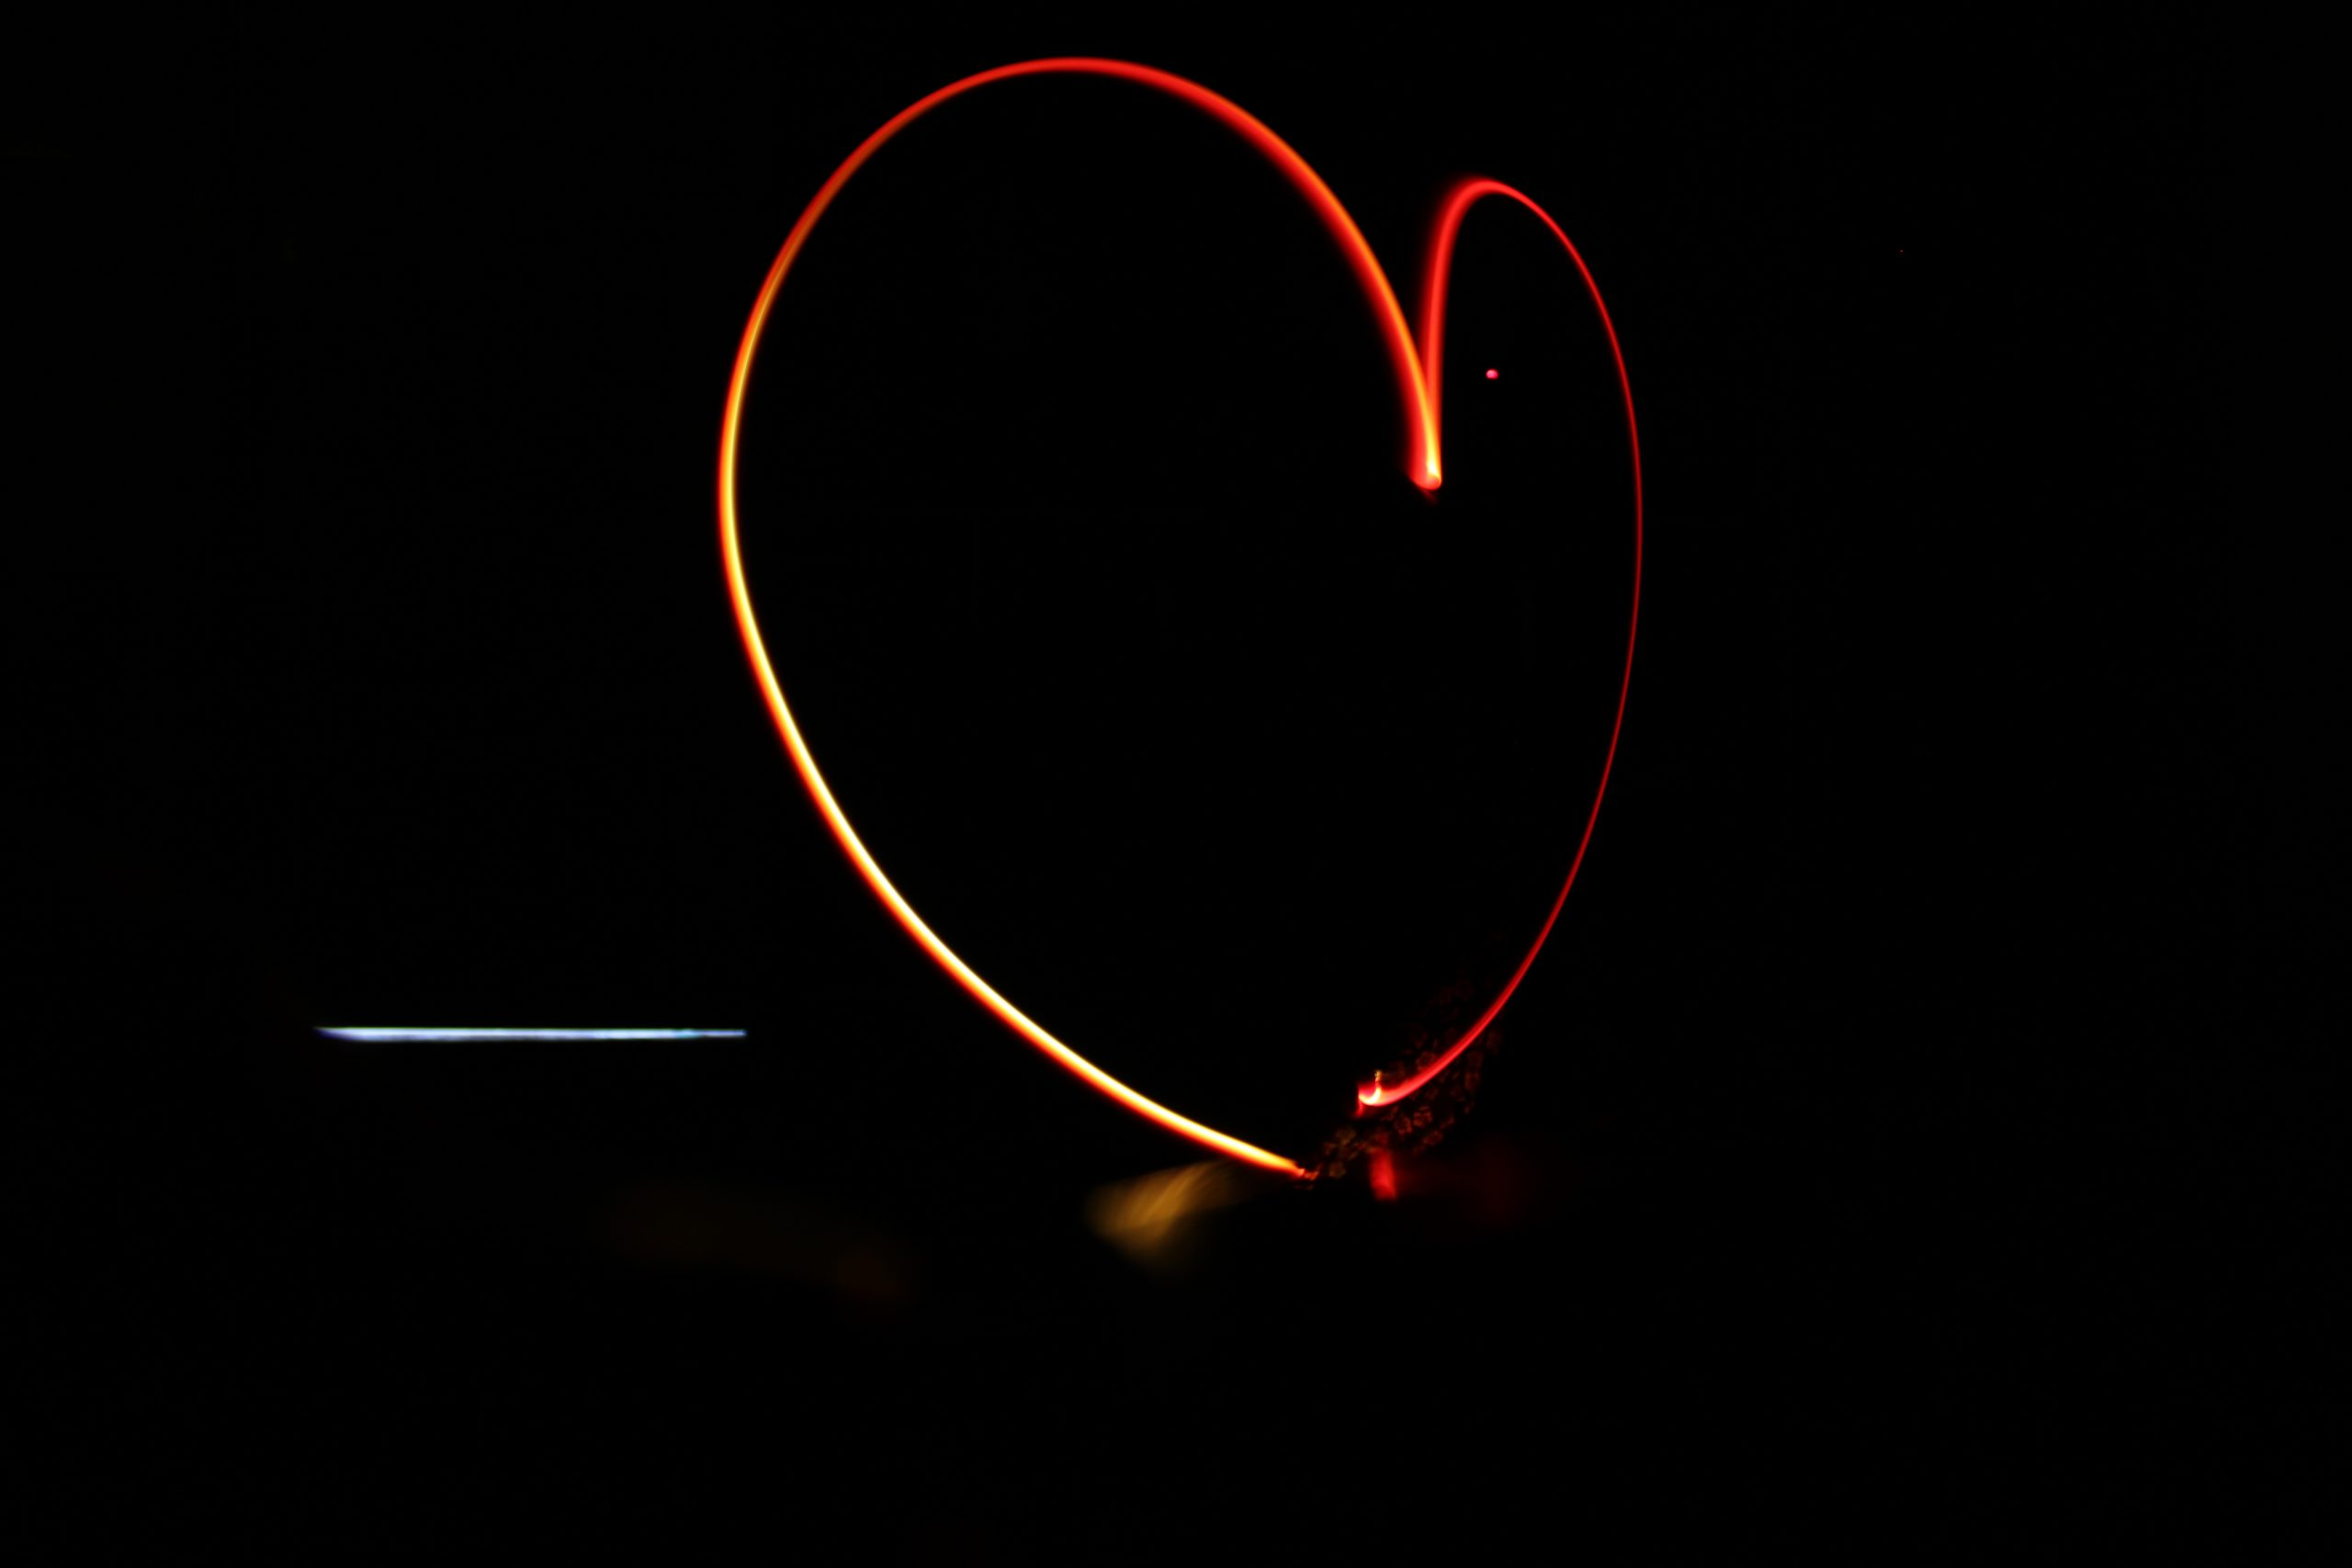 Heart shape formed with light trails